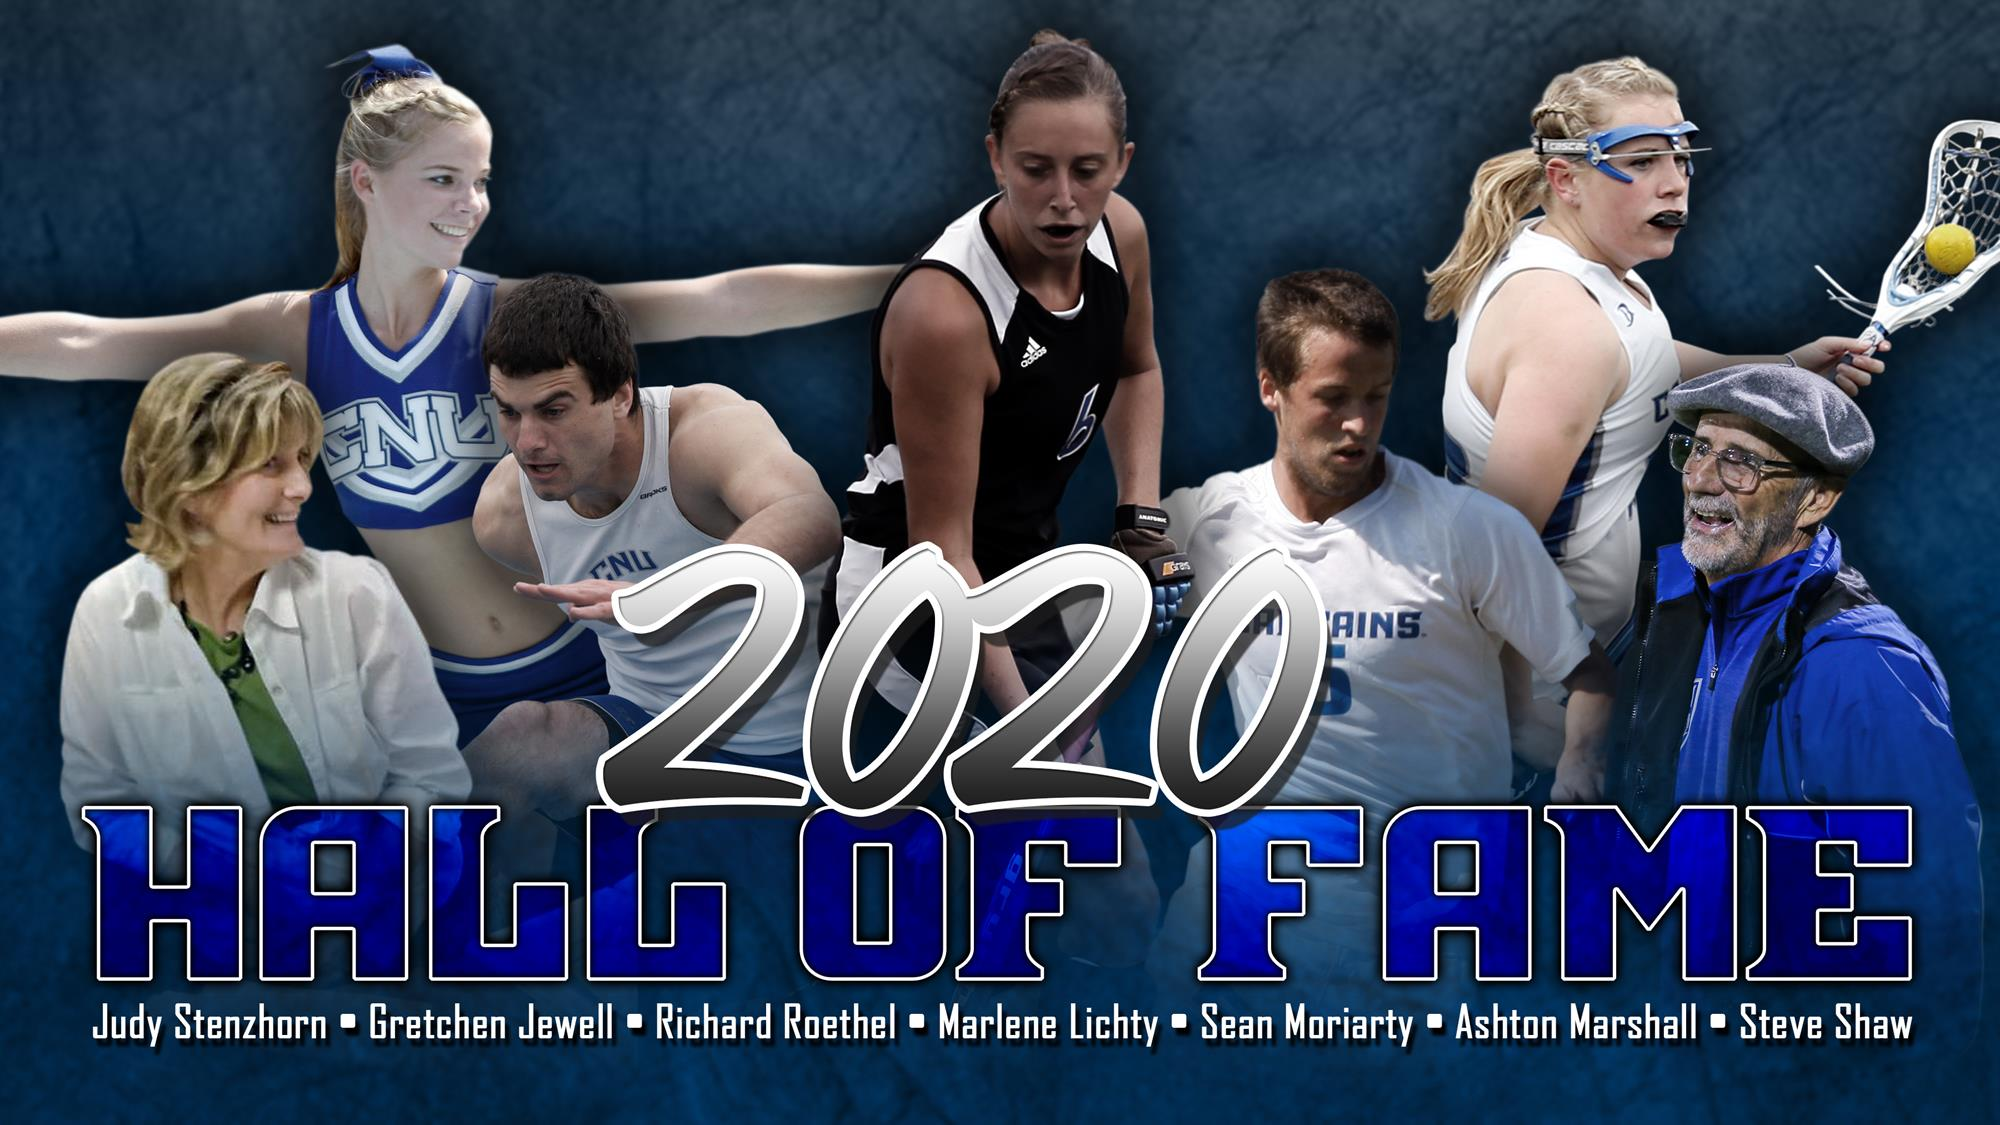 Christopher Newport Athletics Announces 2020 Hall Of Fame